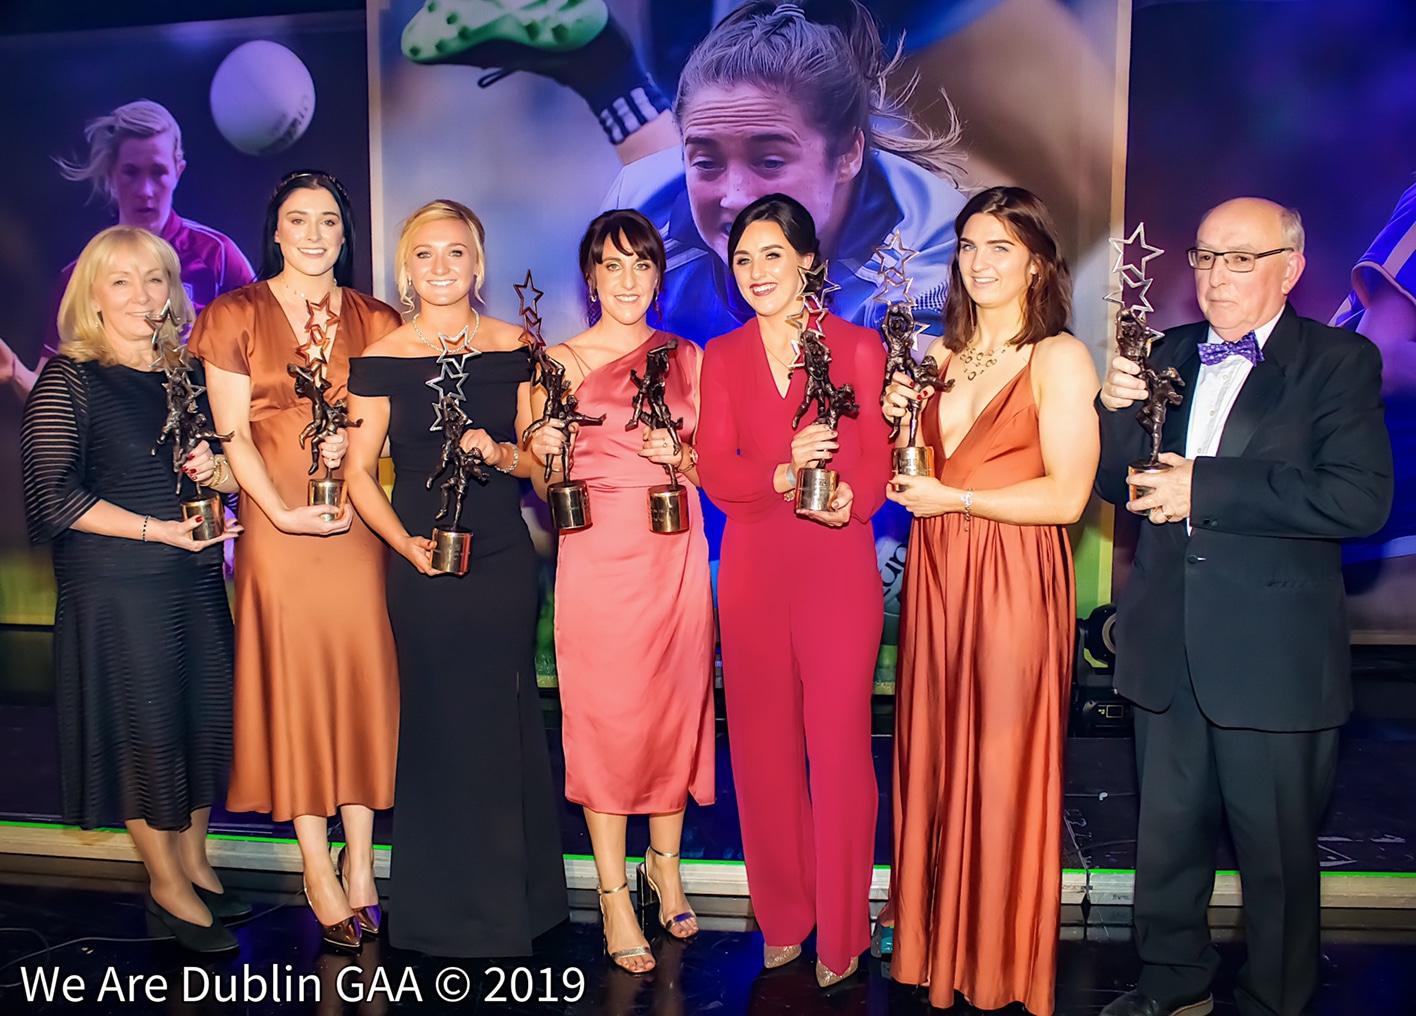 Photo of the Dublin Ladies Football All Star winners from 2019, the nominations for this years awards have just been announced.